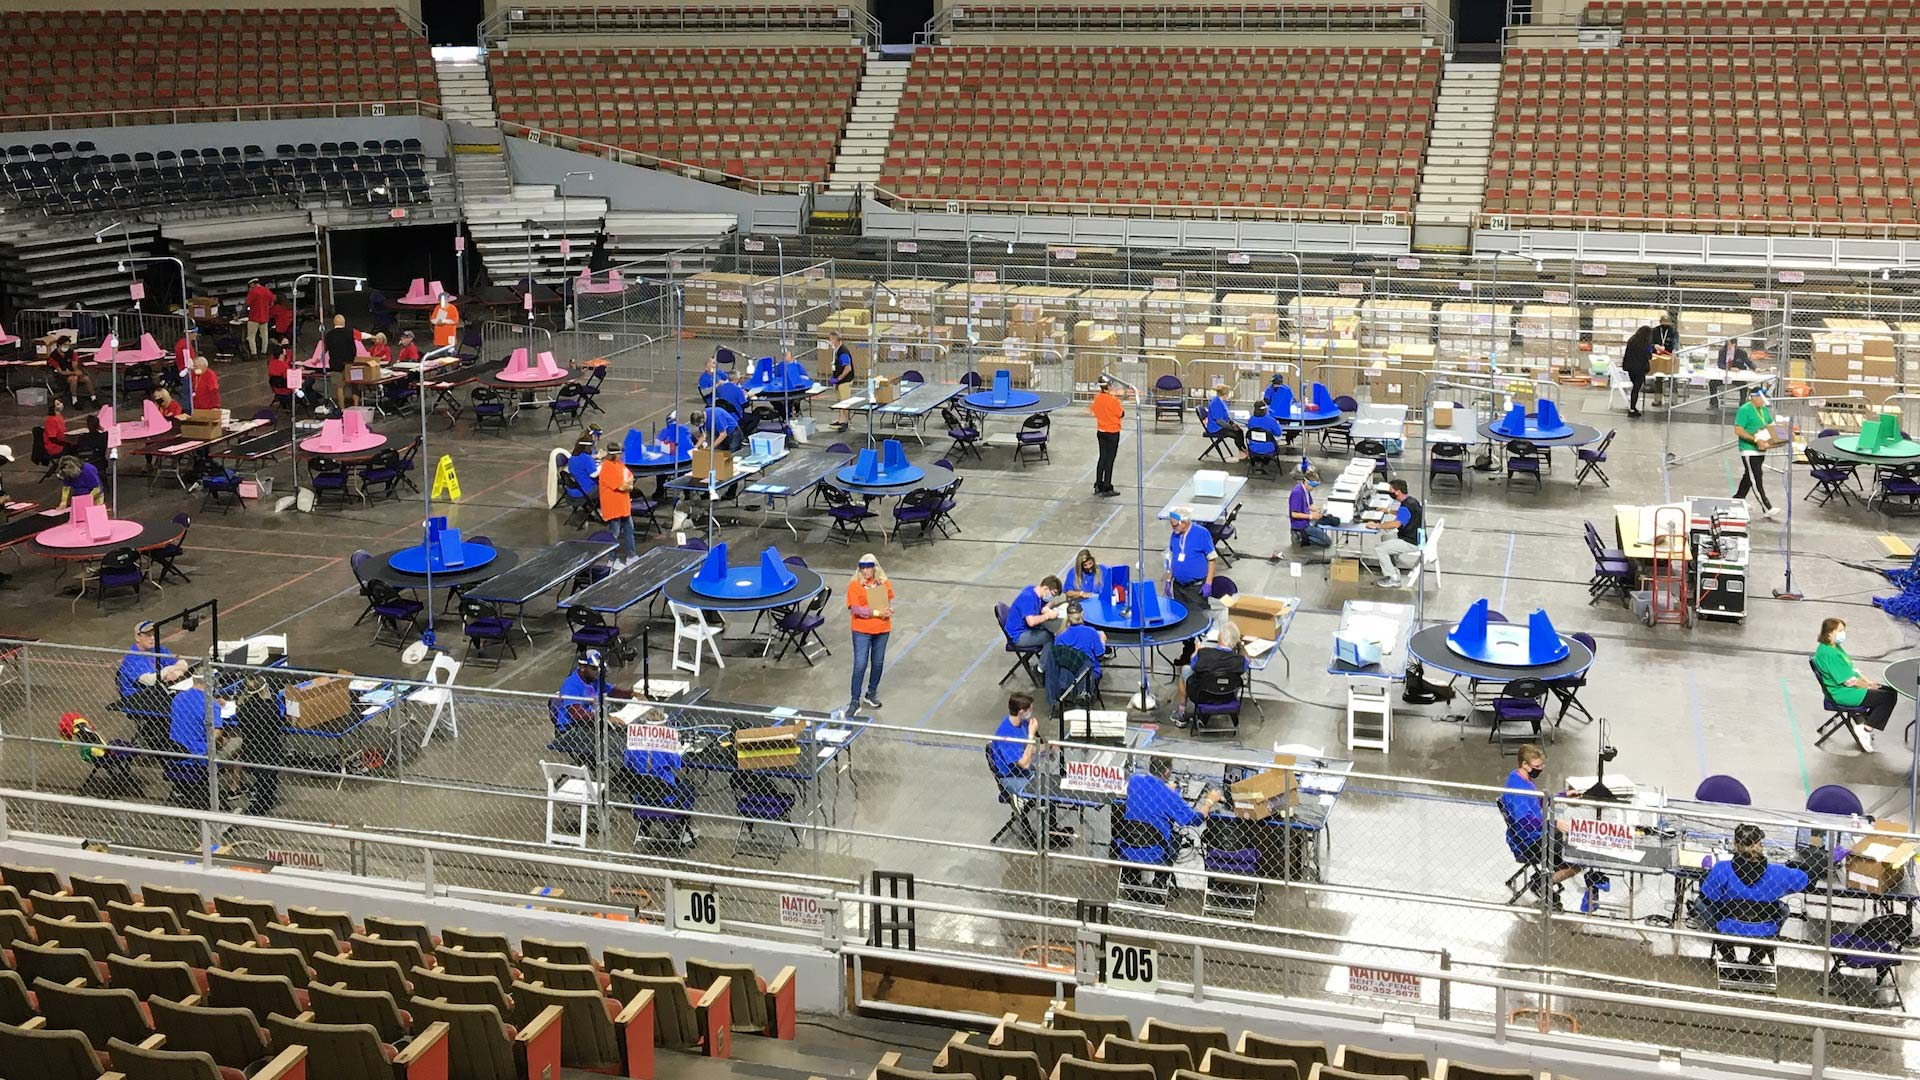 The Arizona Senate's contractors count ballots from Maricopa County inside the Veterans Memorial Coliseum during May 2021.